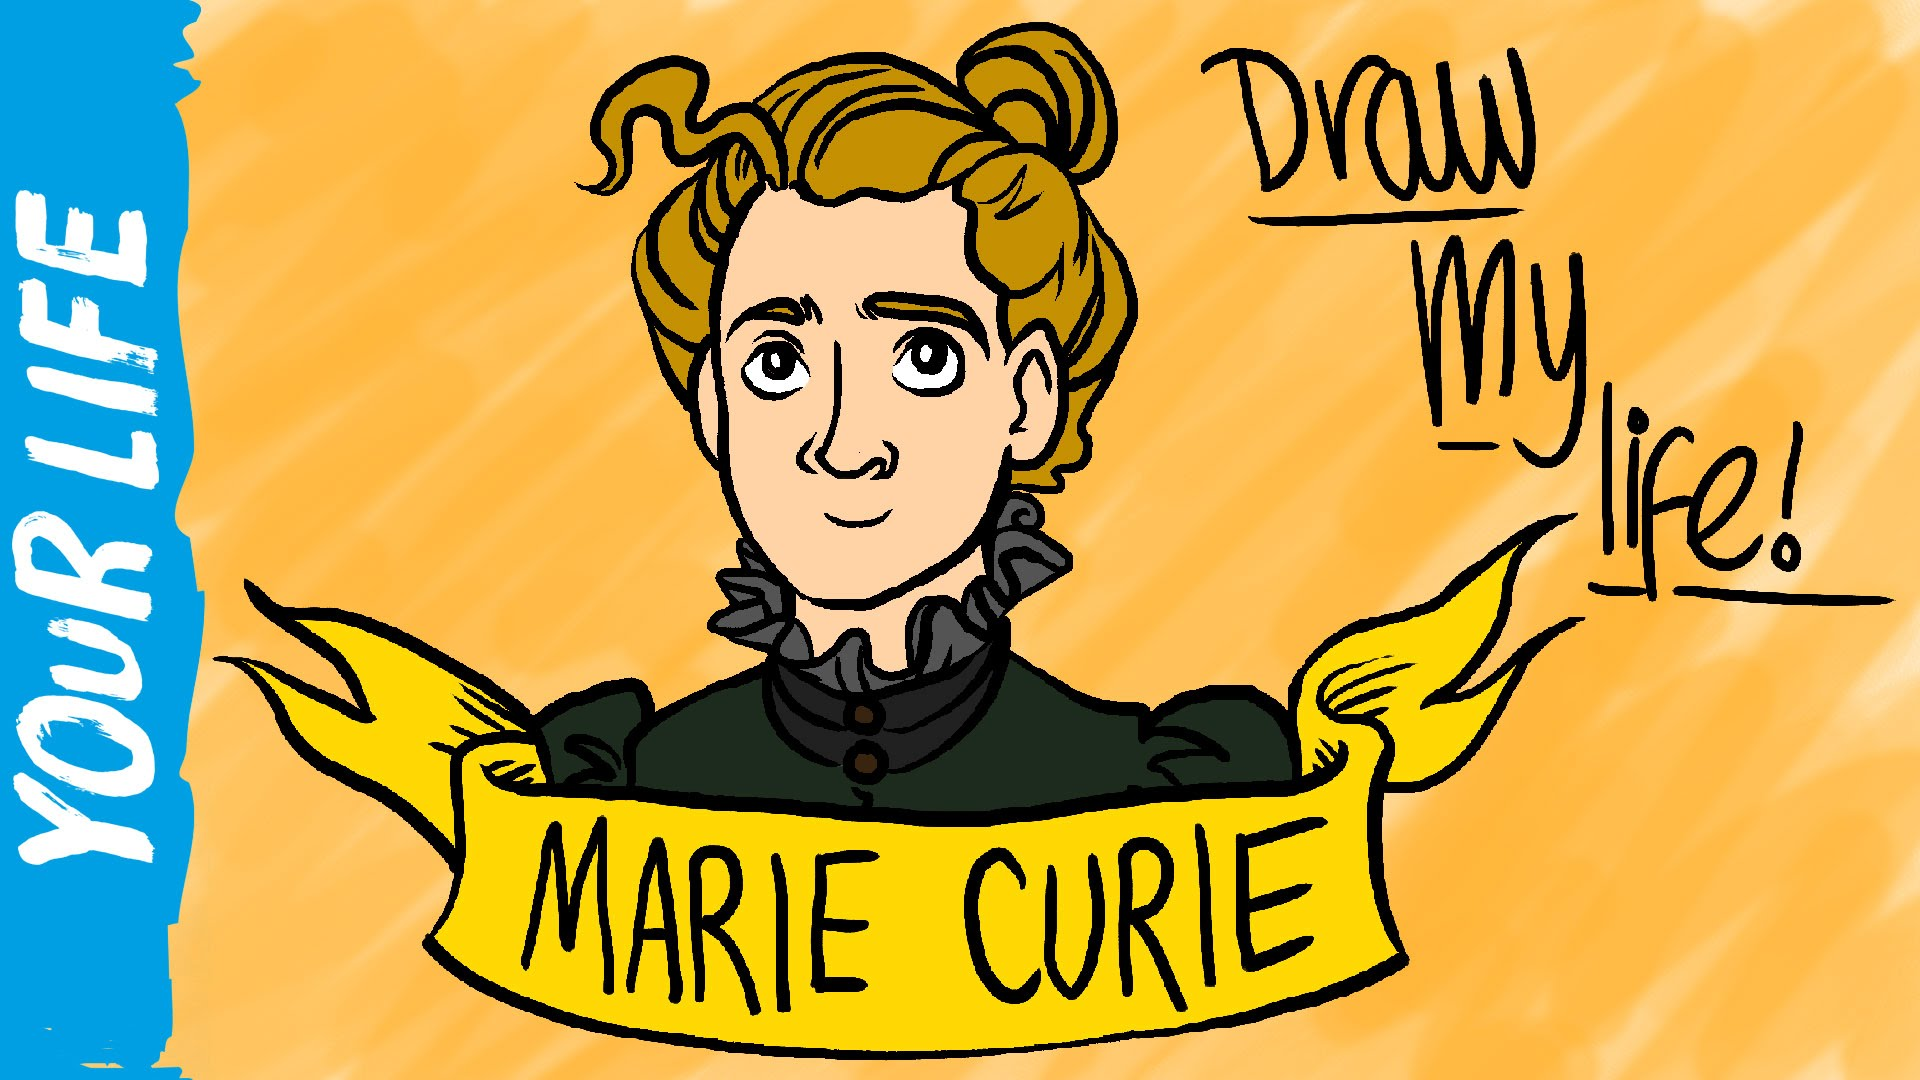 2019 year lifestyle- Power: in Women Marie Curie